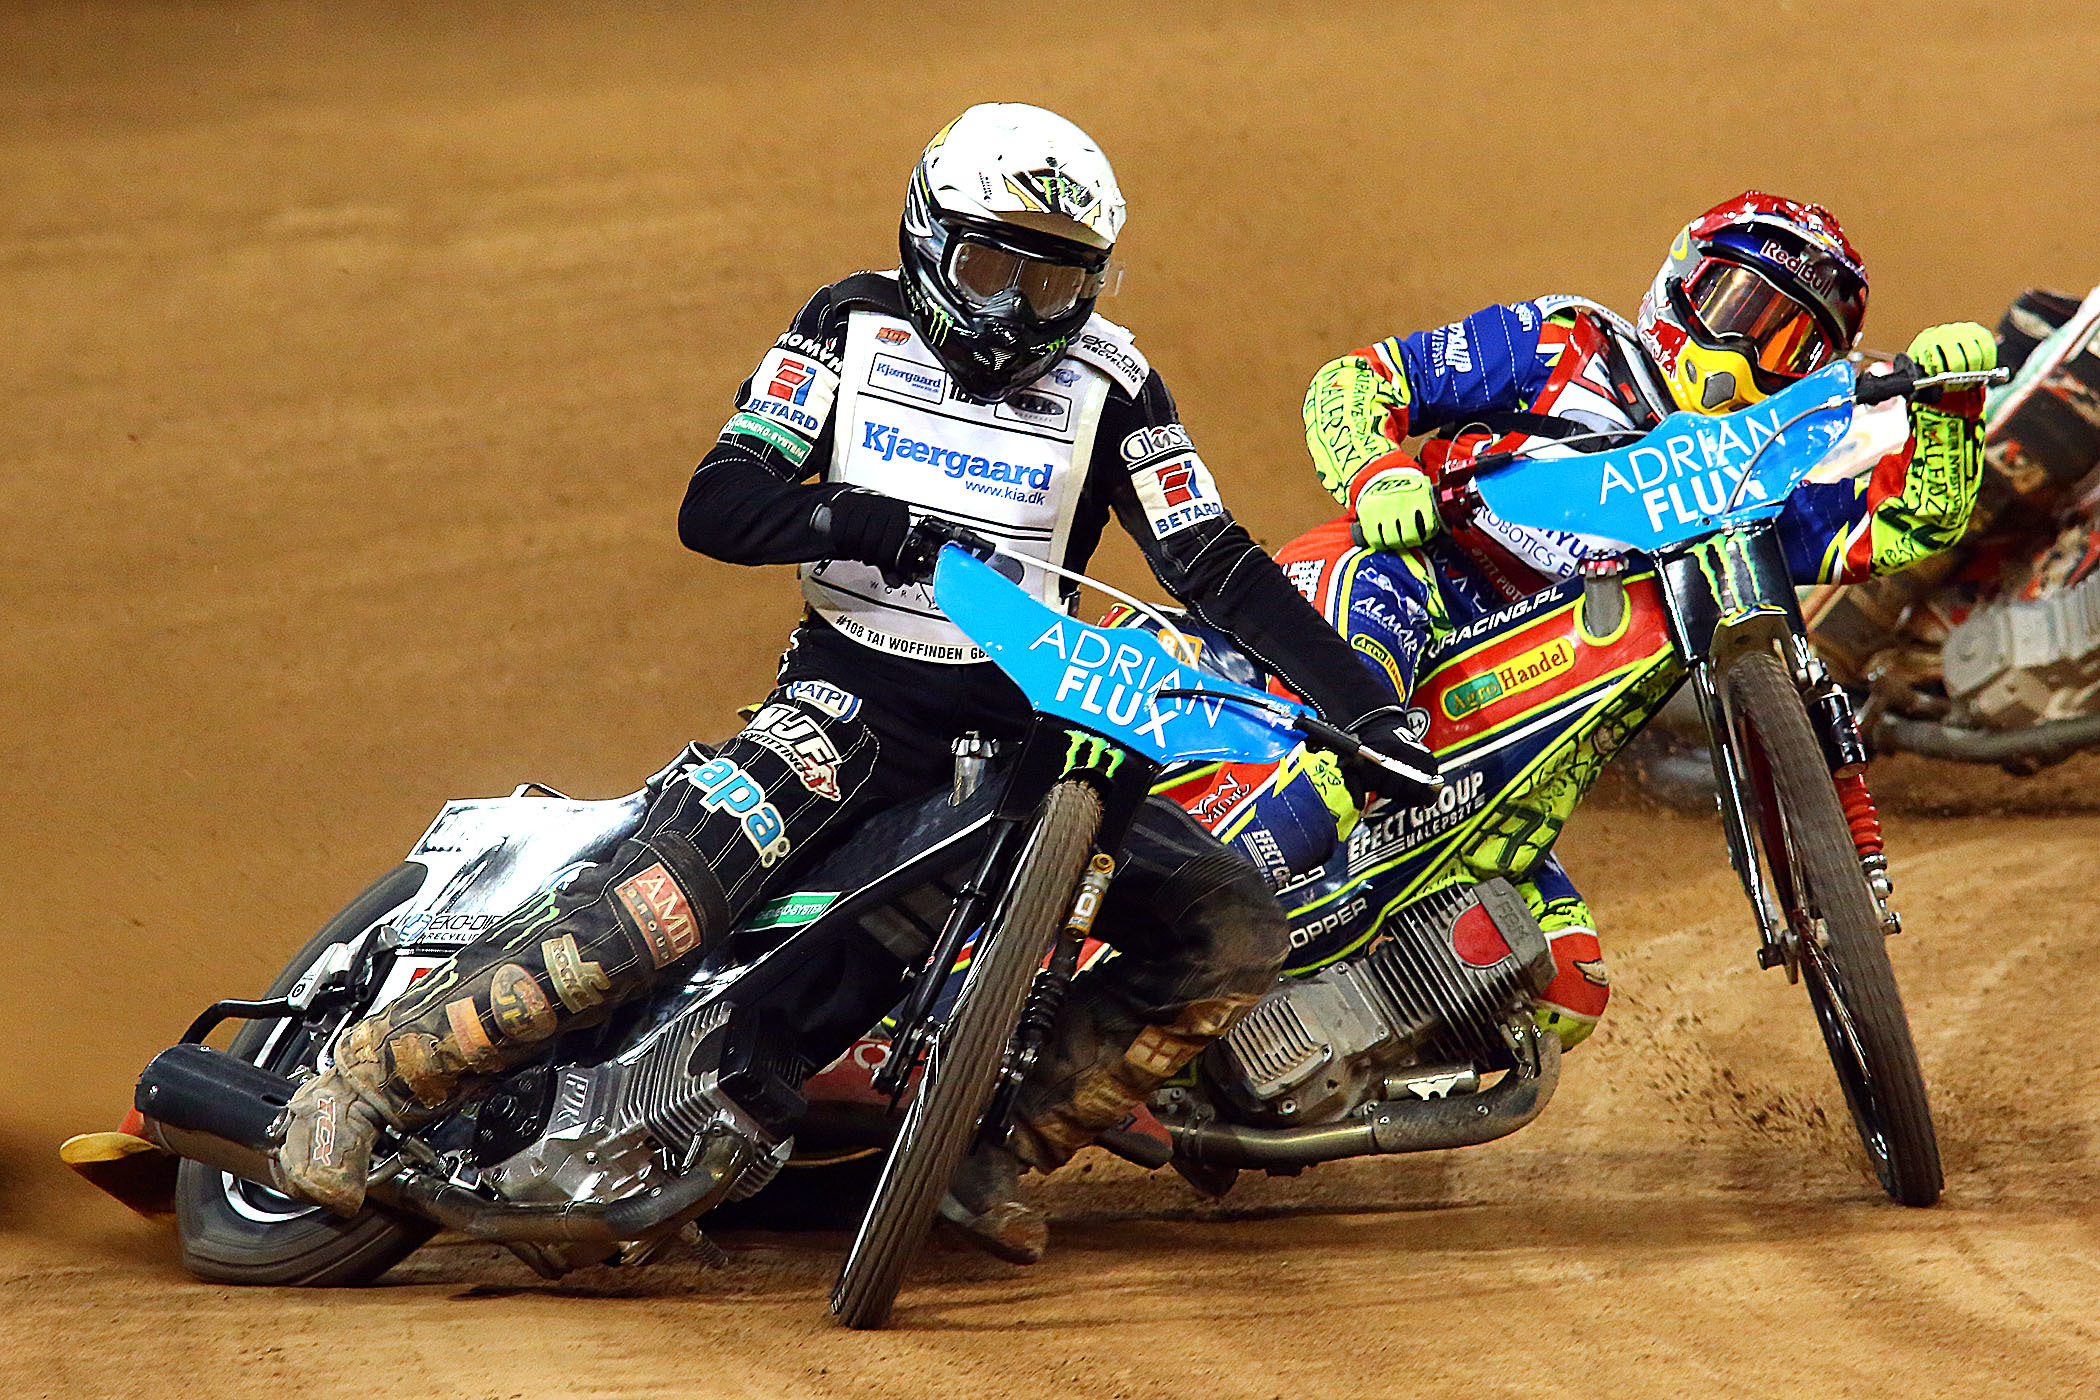 Tai Woffinden & Piotr Pawlicki. British Grand Prix, Saturday, July 9, 2016. Picture: LES AUBREY.